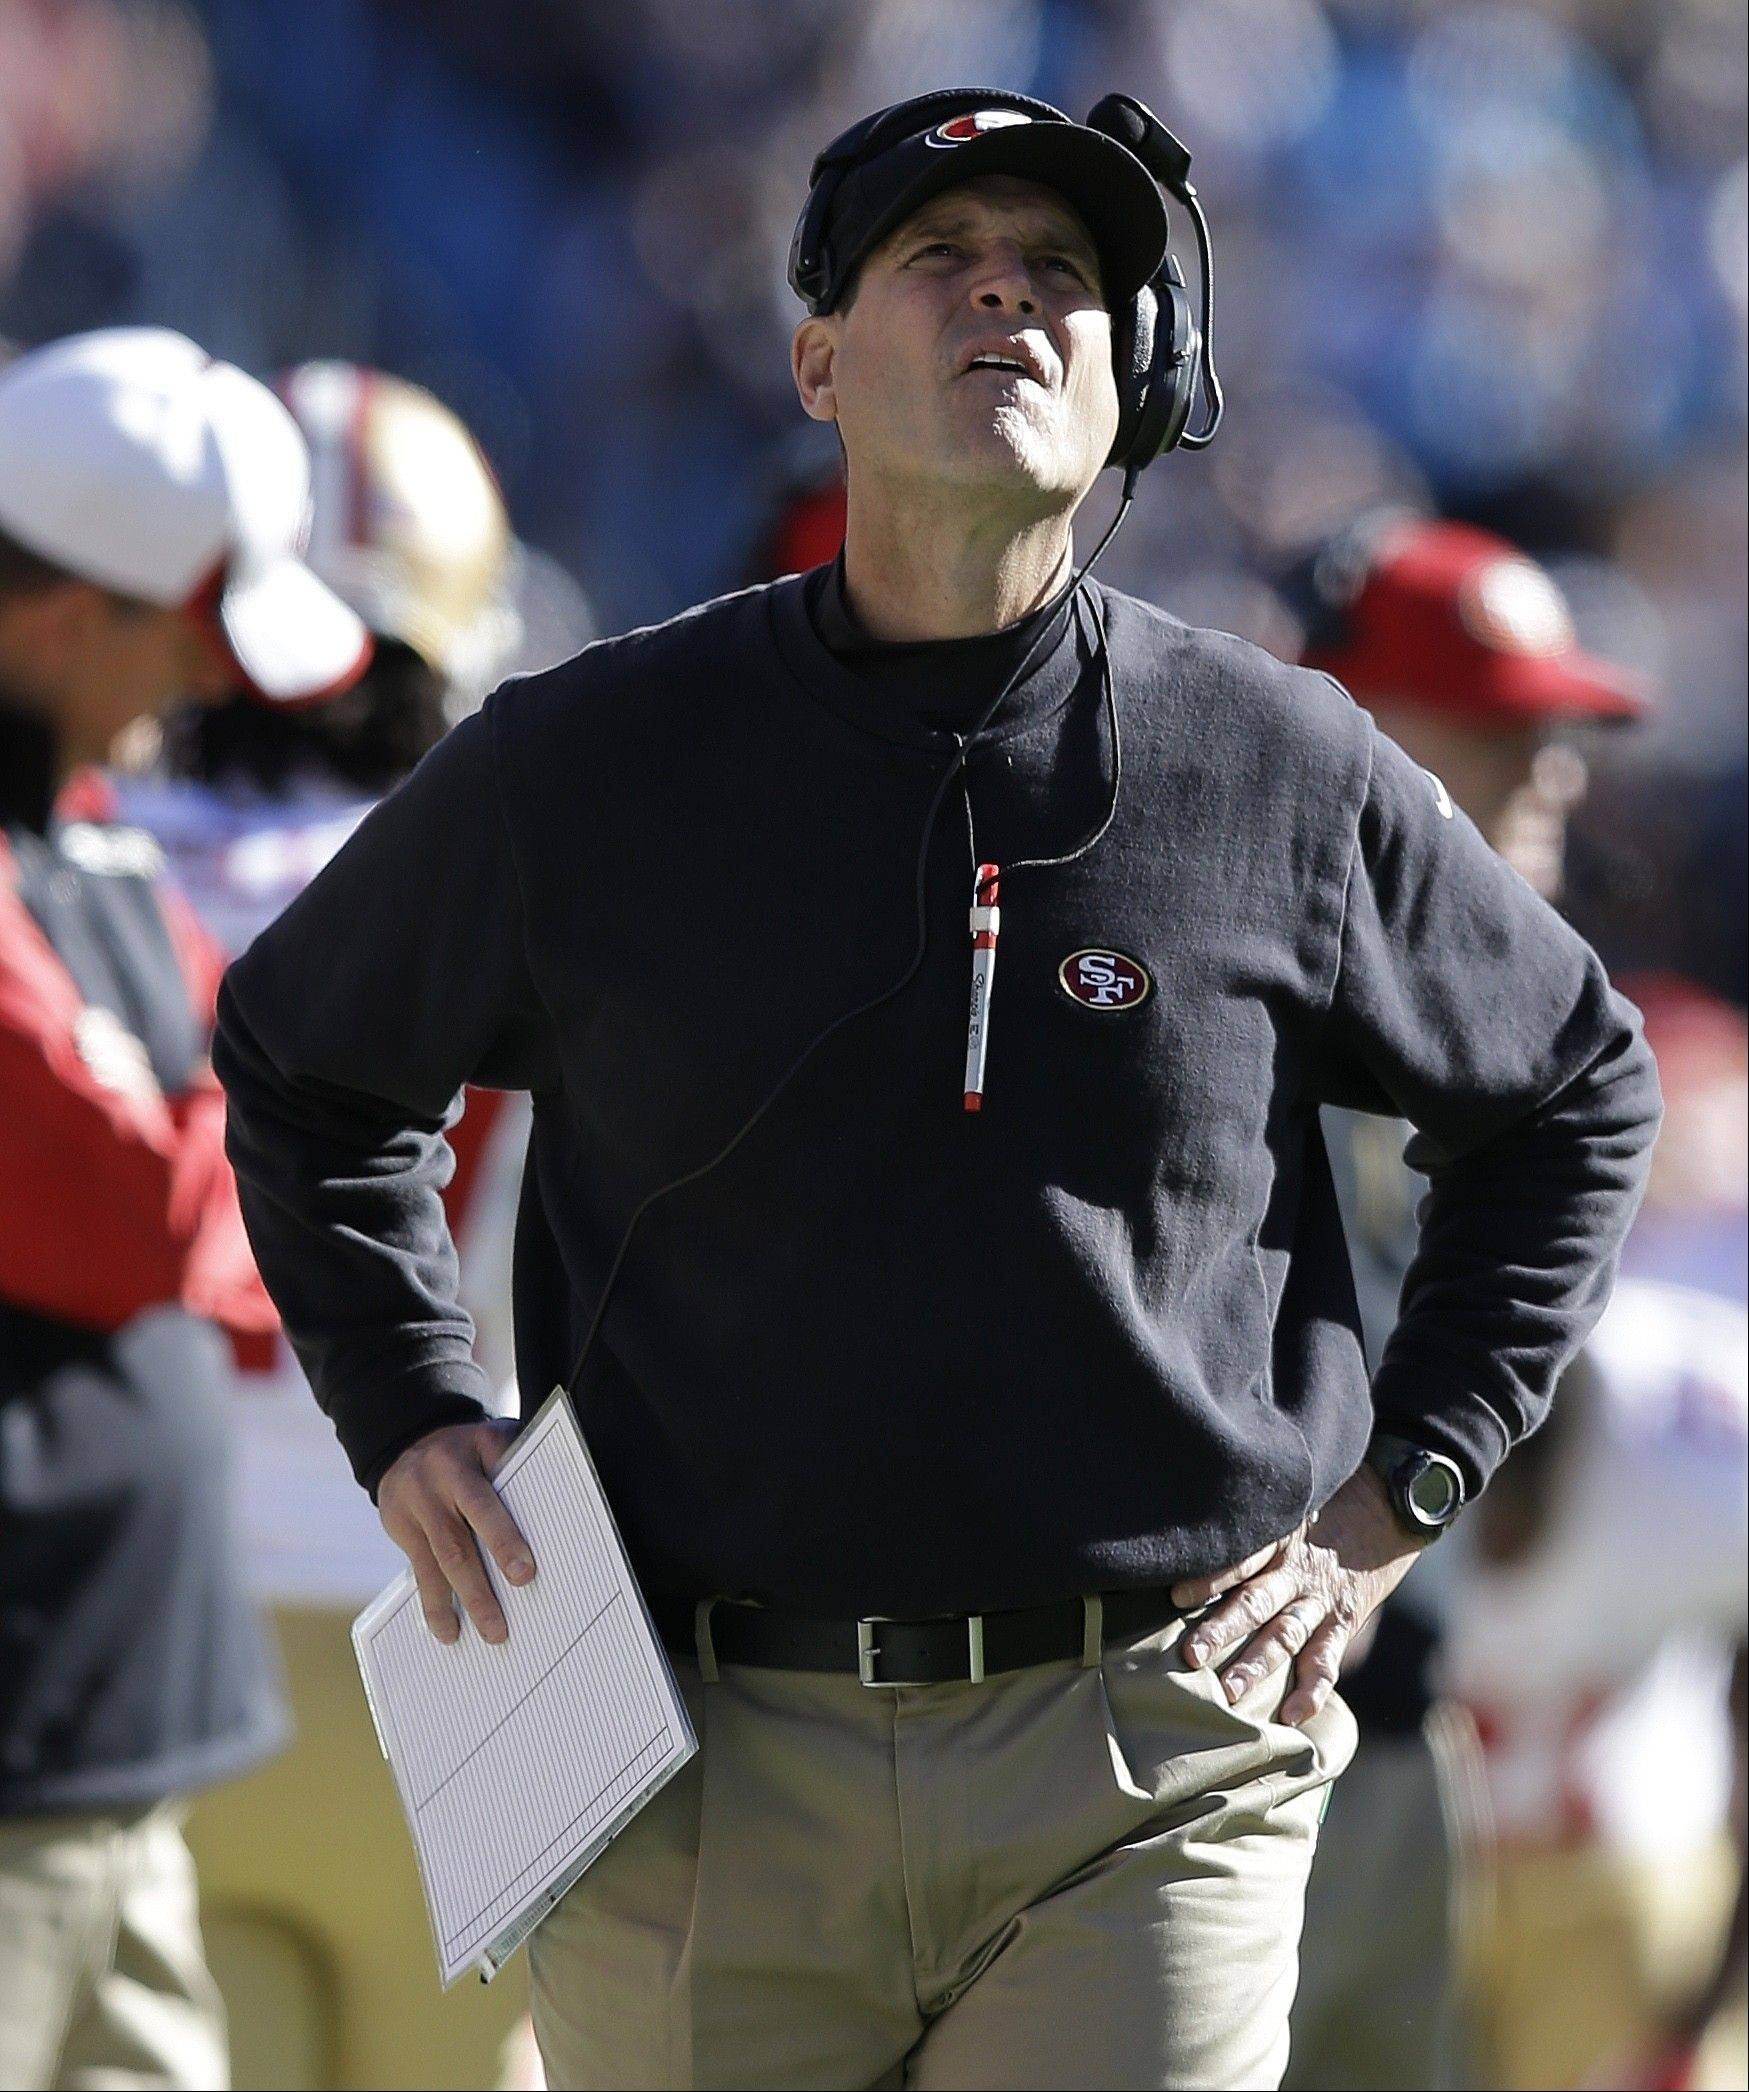 San Francisco 49ers head coach Jim Harbaugh watches the scoreboard against the Carolina Panthersduring the first half of a divisional playoff NFL football game, Sunday, Jan. 12, 2014, in Charlotte, N.C. (AP Photo/Gerry Broome)